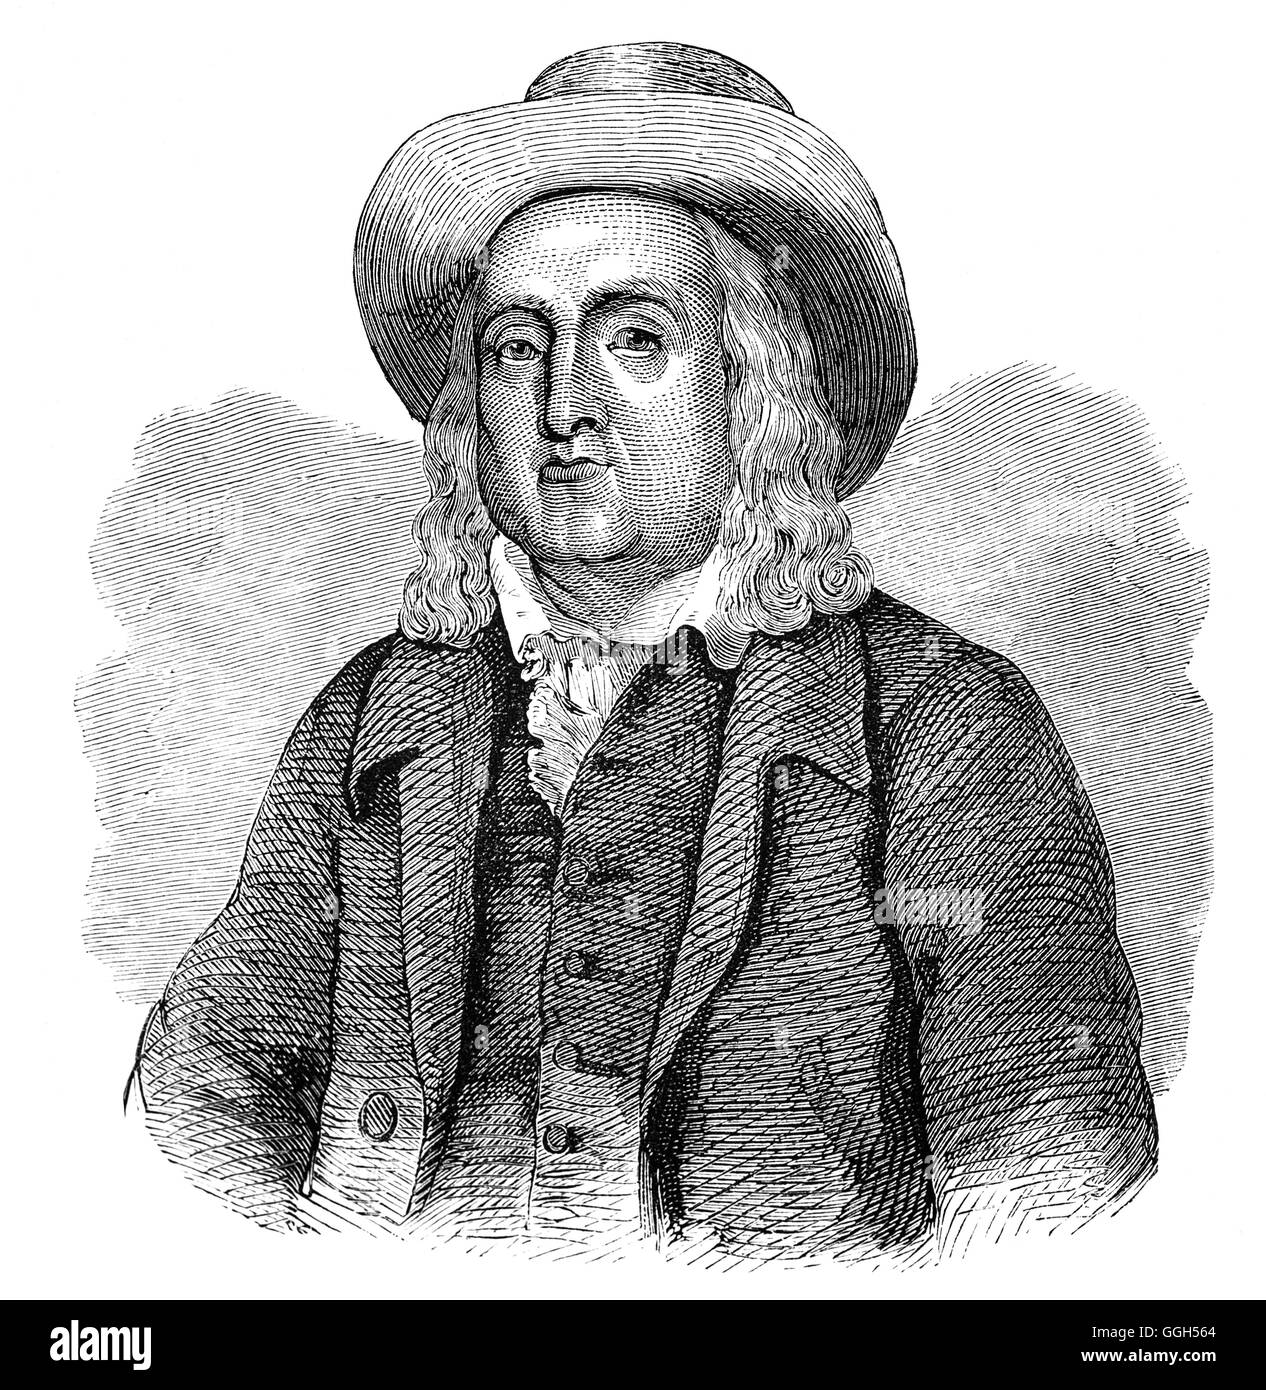 Jeremy Bentham (1747 – 1832) was an English philosopher, jurist, and social reformer. He is regarded as the founder - Stock Image